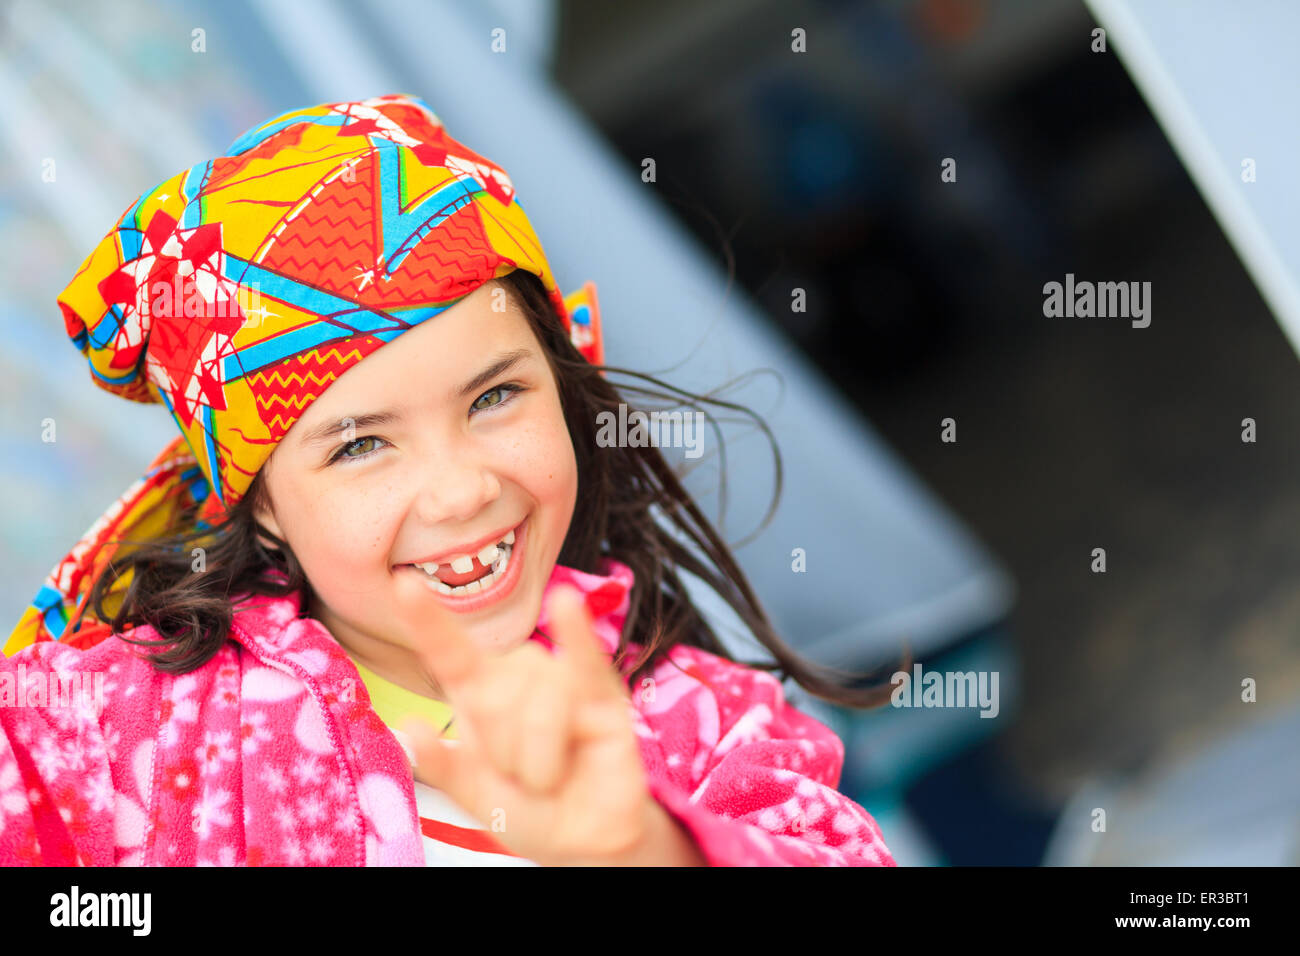 Portrait of a smiling girl gesturing horn sign - Stock Image